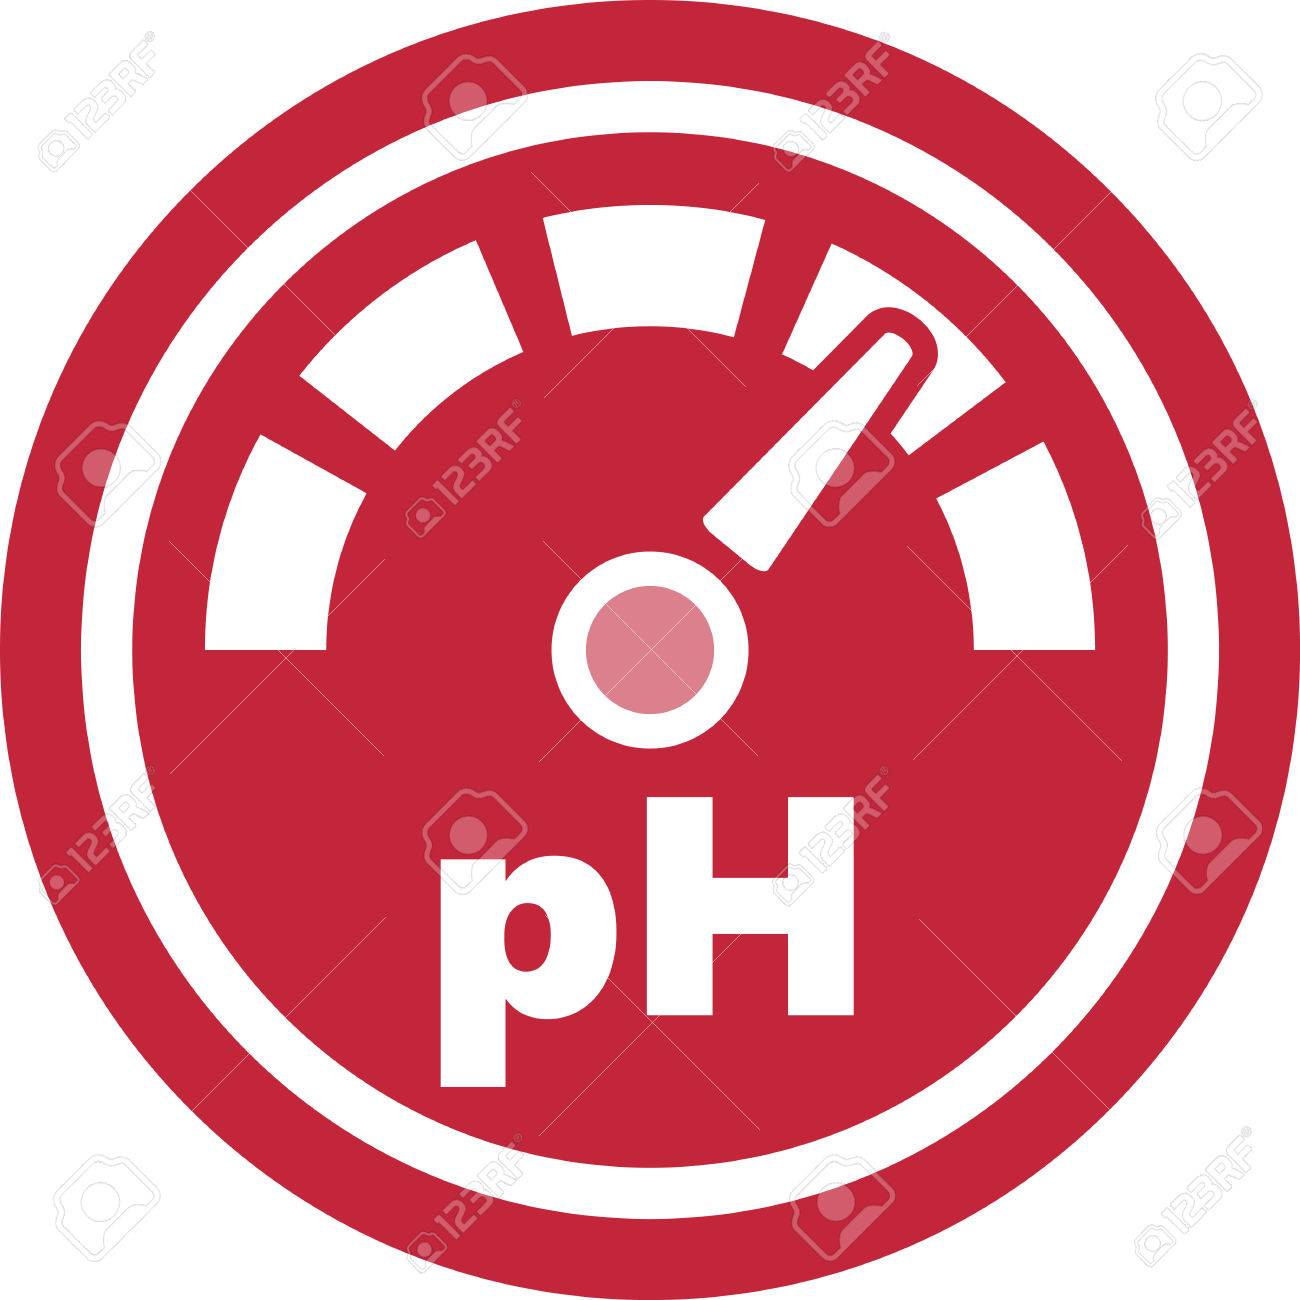 pH increase measurement red round icon - 86025257